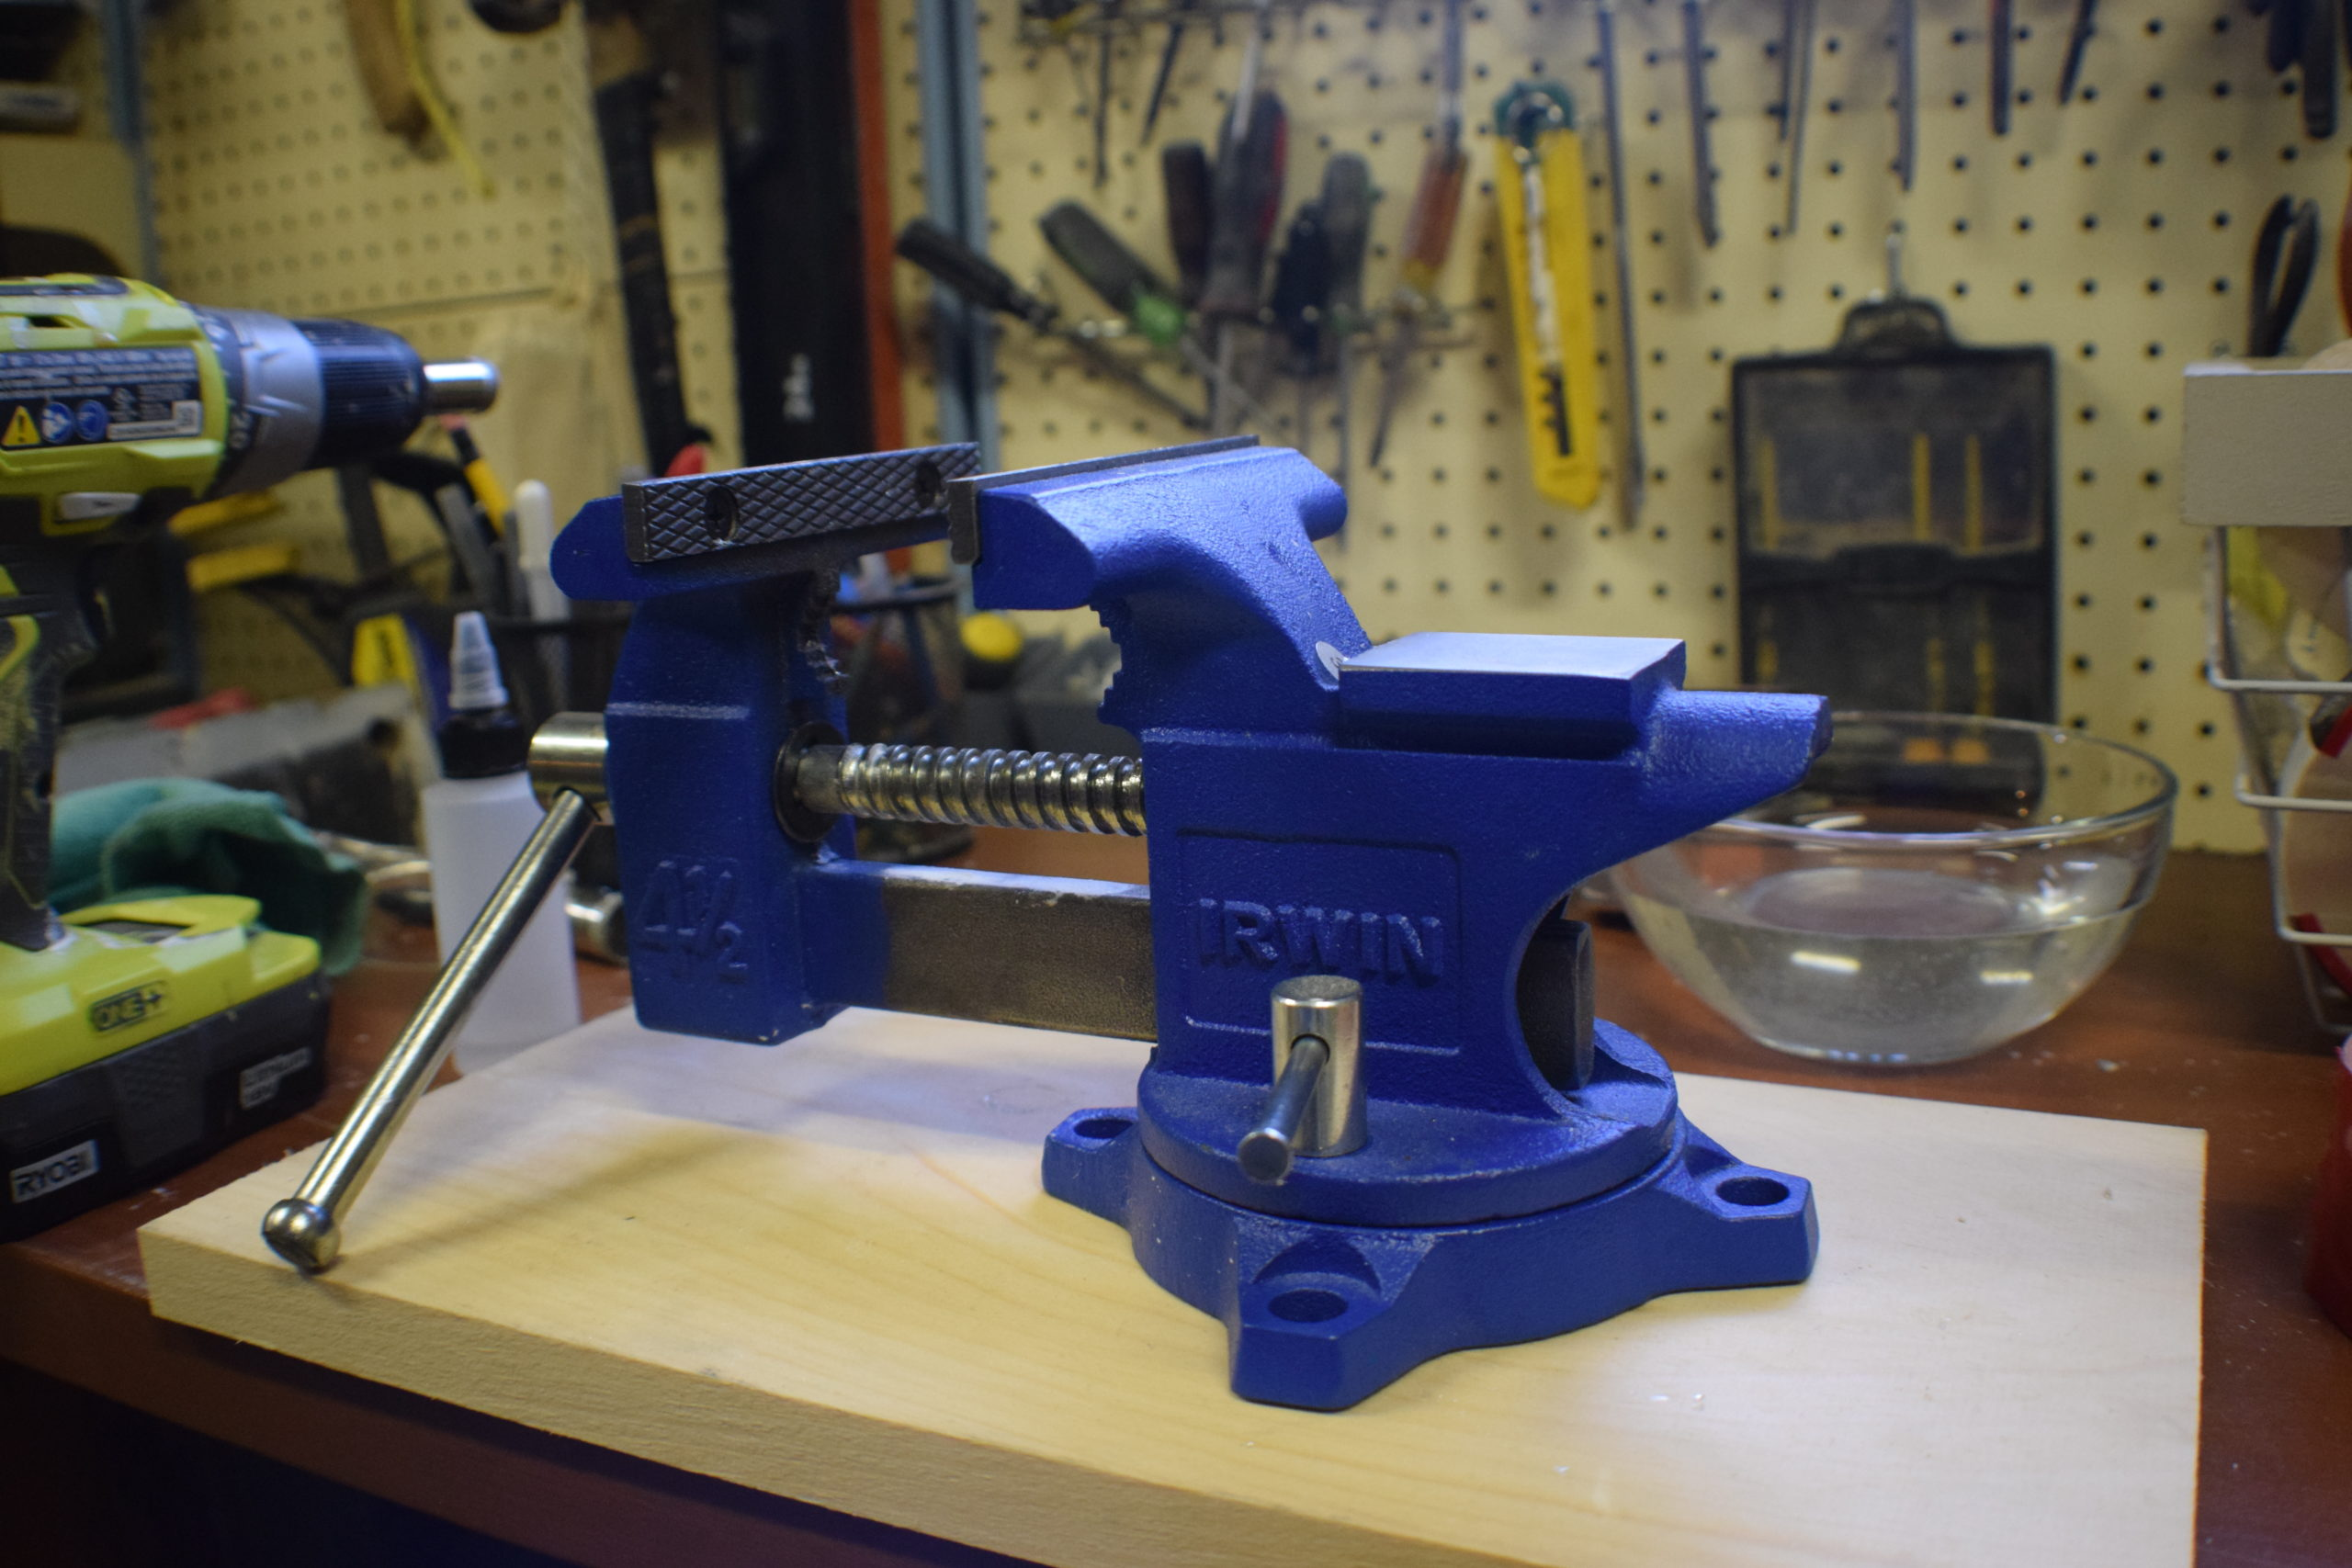 blue vice by irwin with silver nobs on a work bench